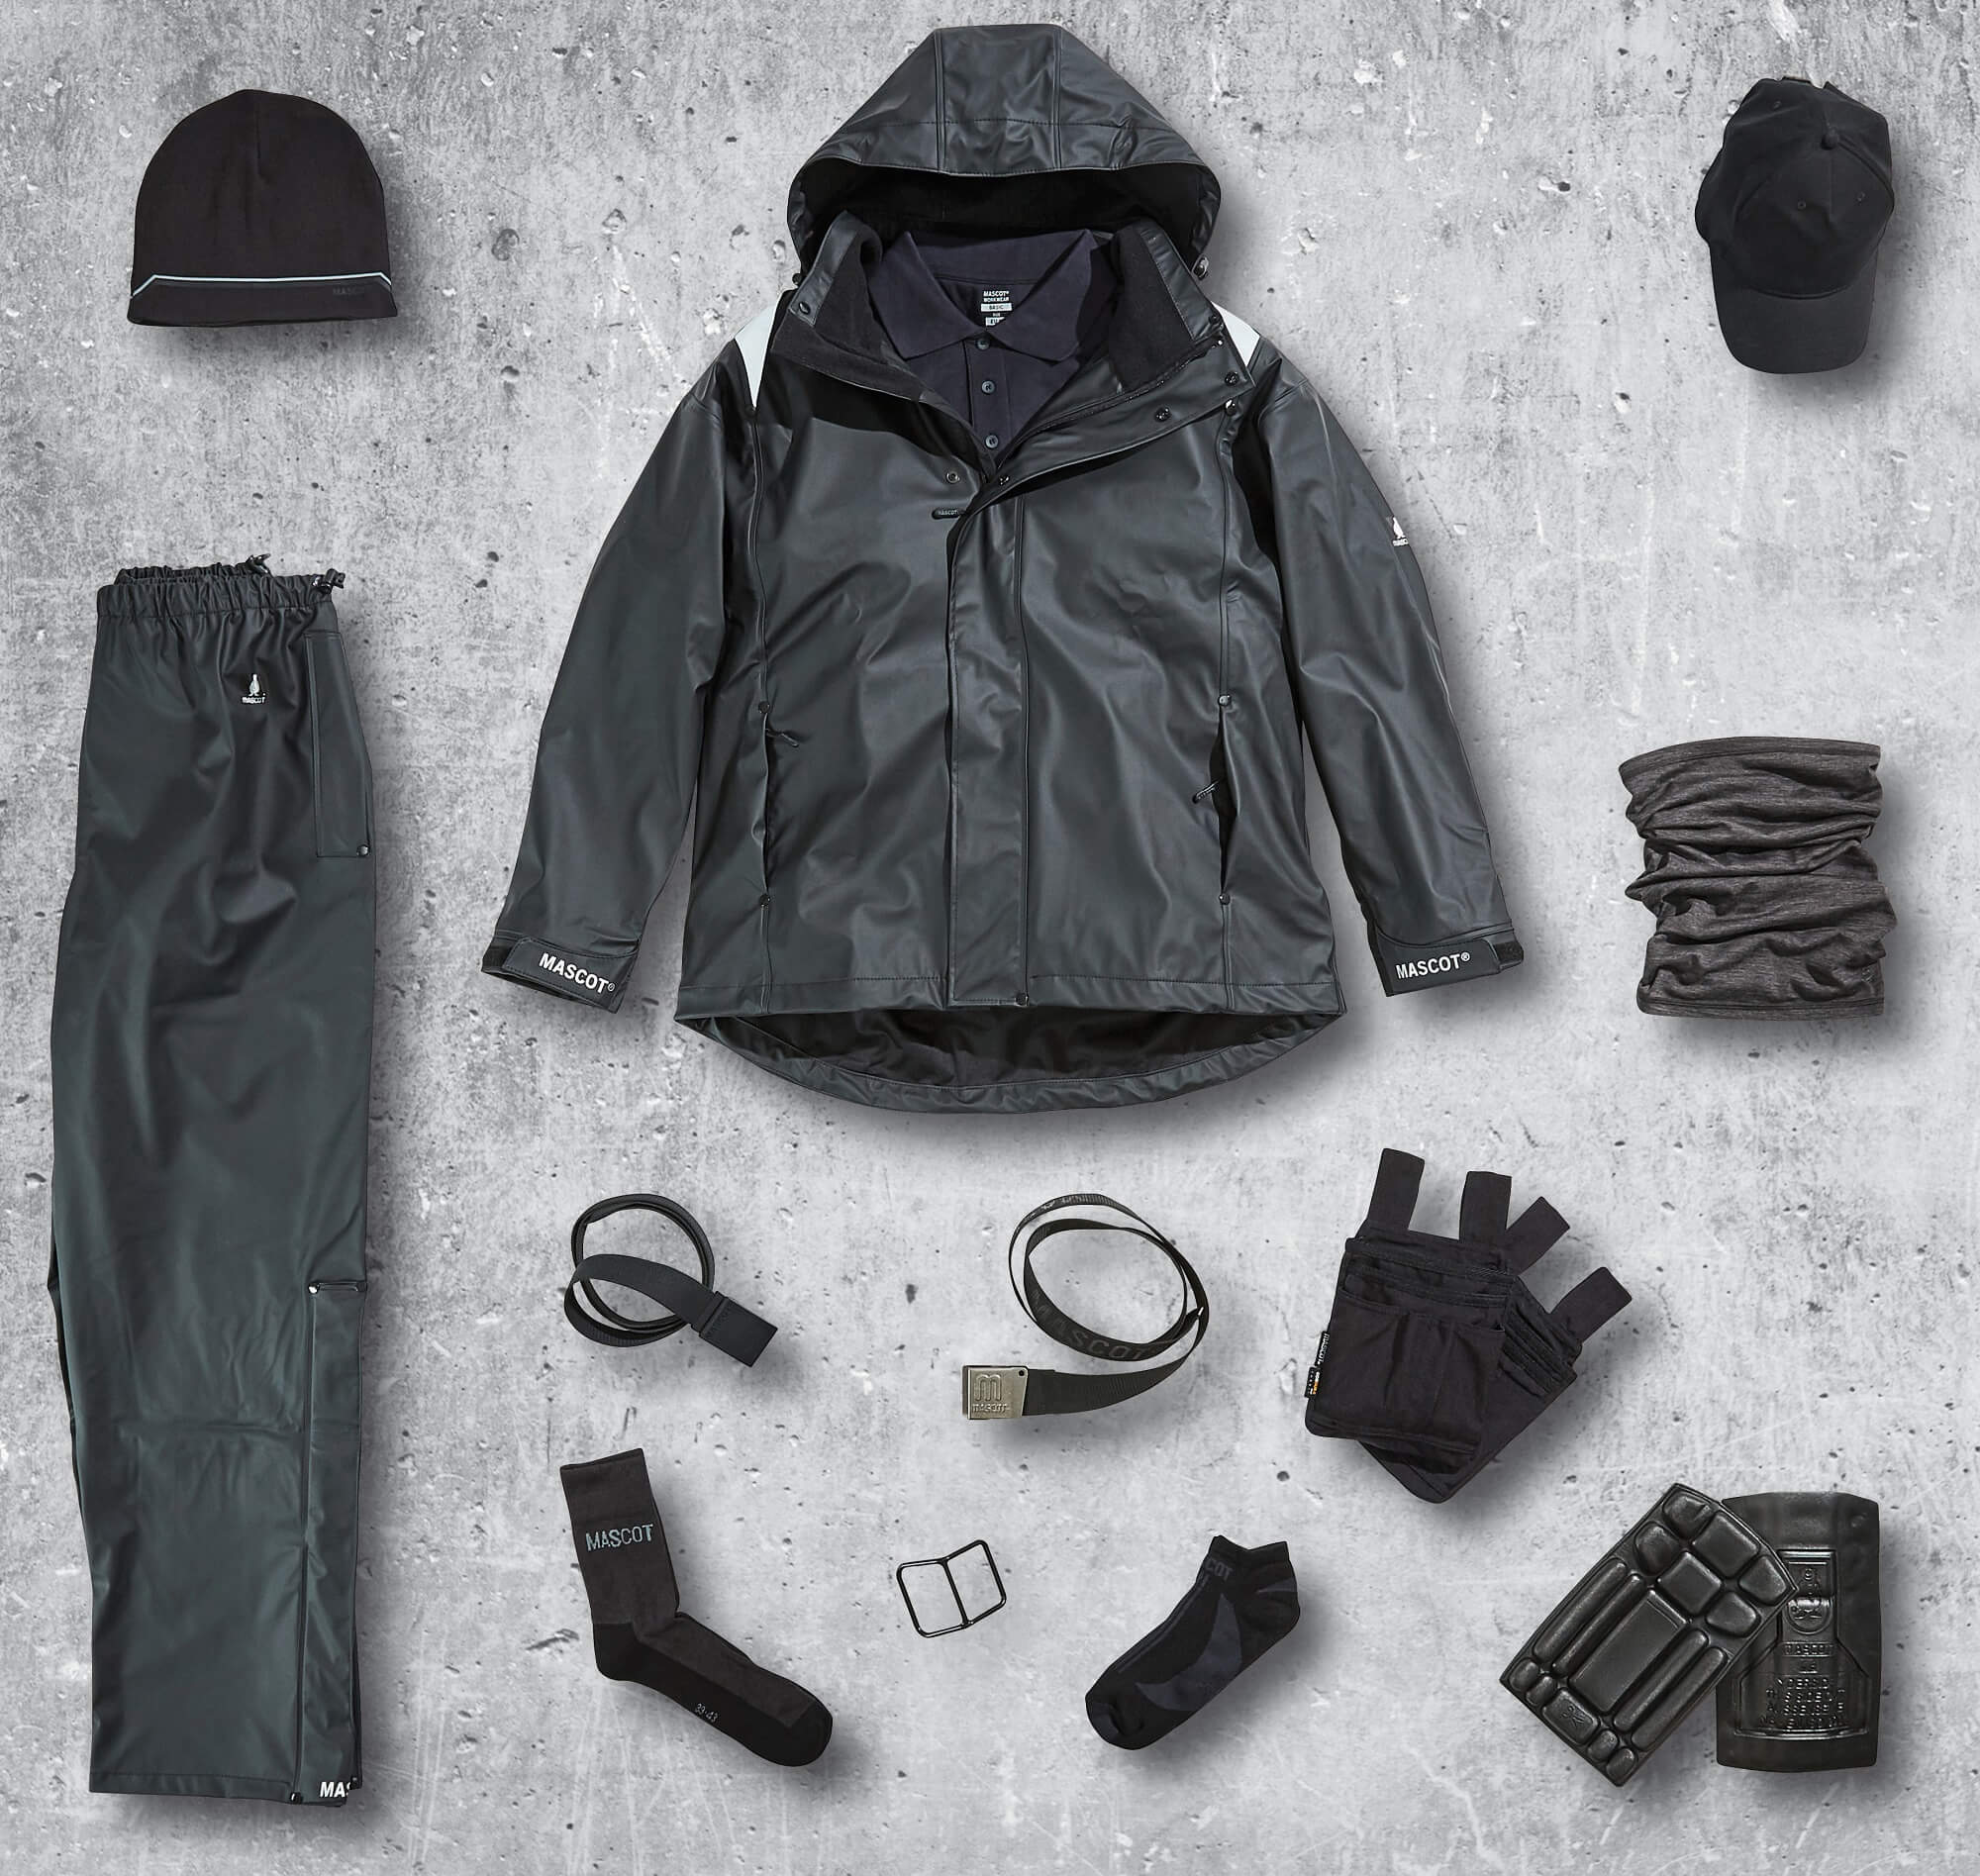 Ropa impermeable & Accesorio - Negro - Collage